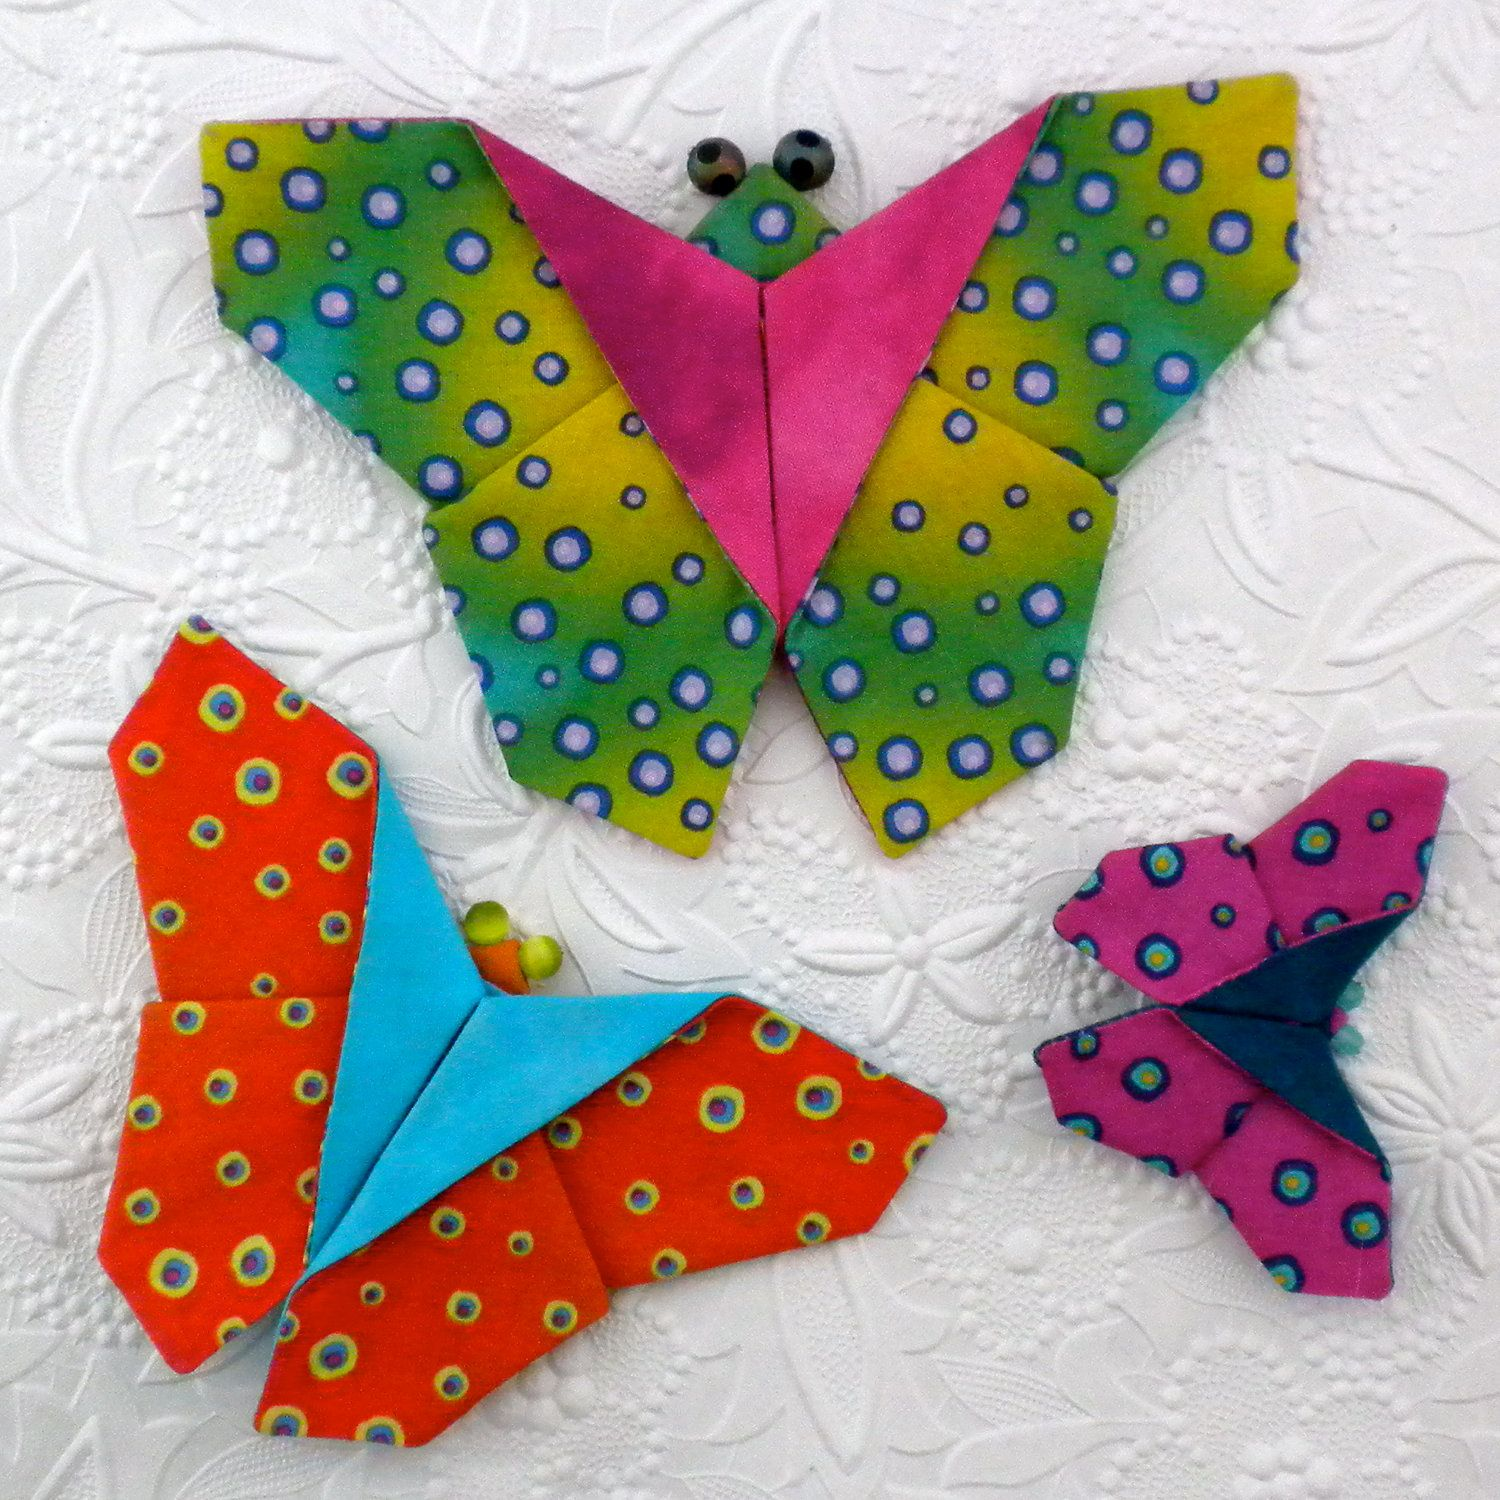 Kanzashi Butterfly Pattern Fabric Origami Butterfly Tutorial